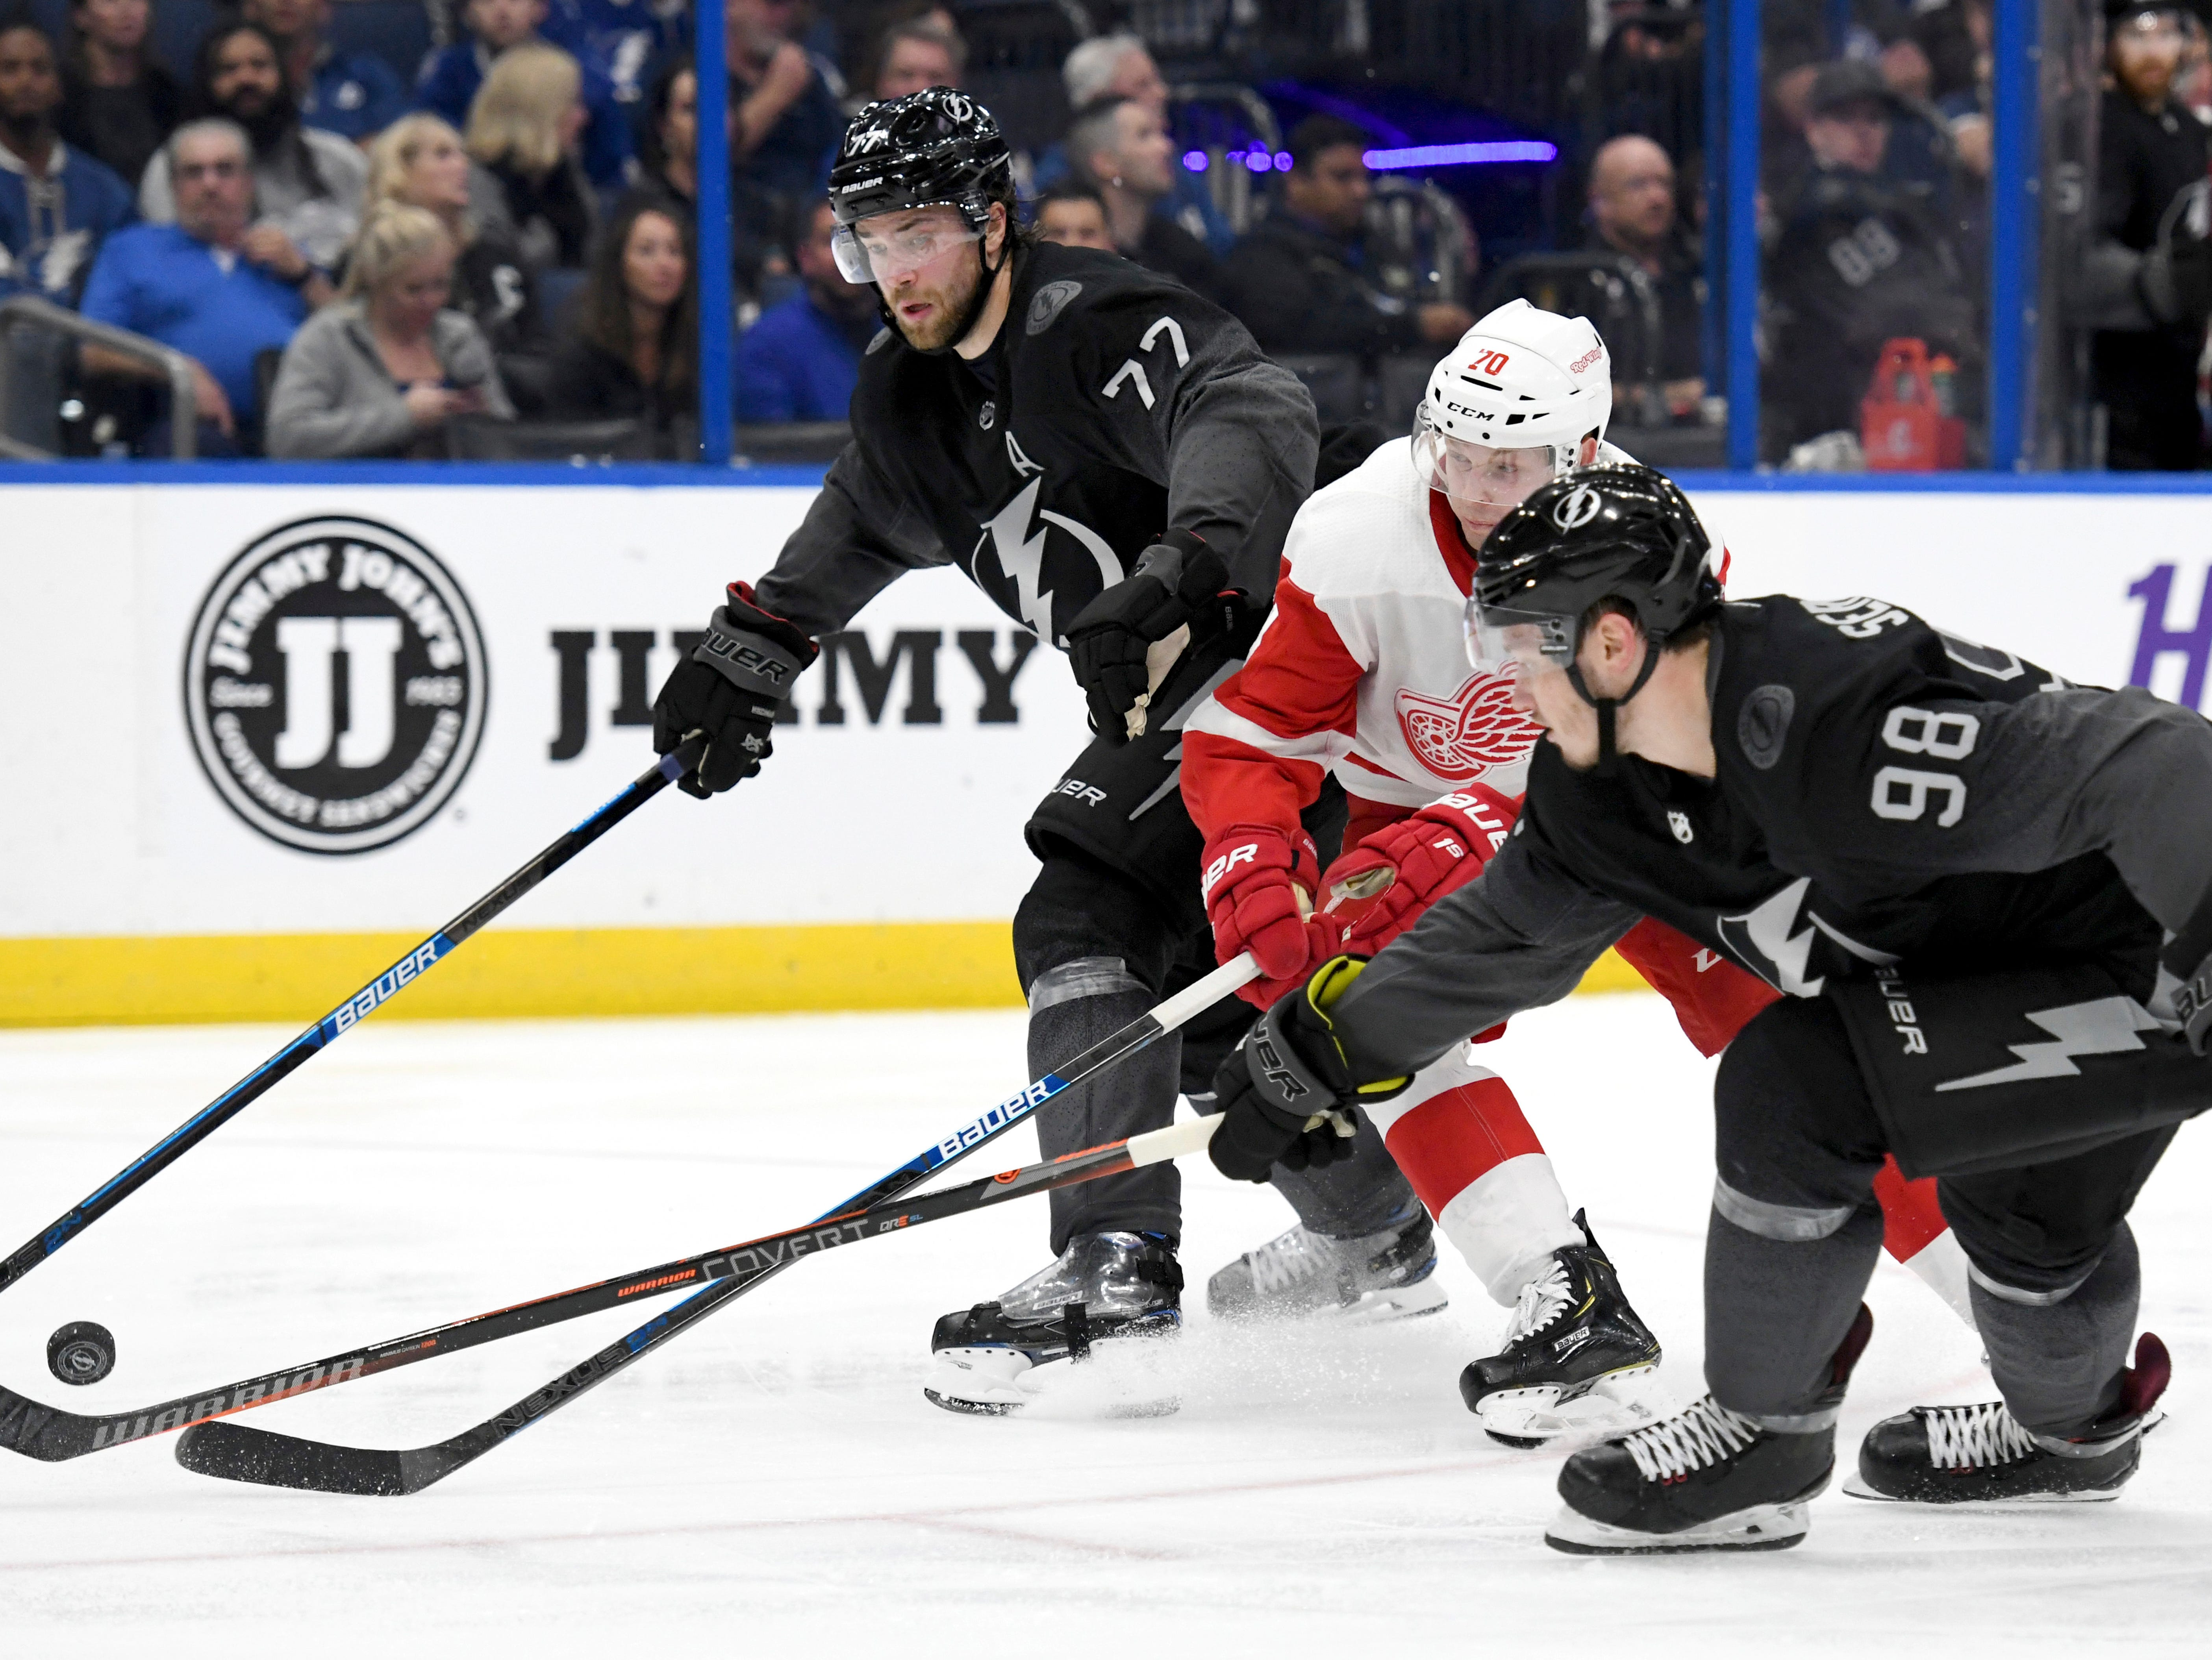 Tampa Bay Lightning defenseman Victor Hedman (77) and defenseman Mikhail Sergachev (98) defend against Detroit Red Wings center Christoffer Ehn (70) during the third period of an NHL hockey game Saturday, March 9, 2019, in Tampa, Fla. (AP Photo/Jason Behnken)